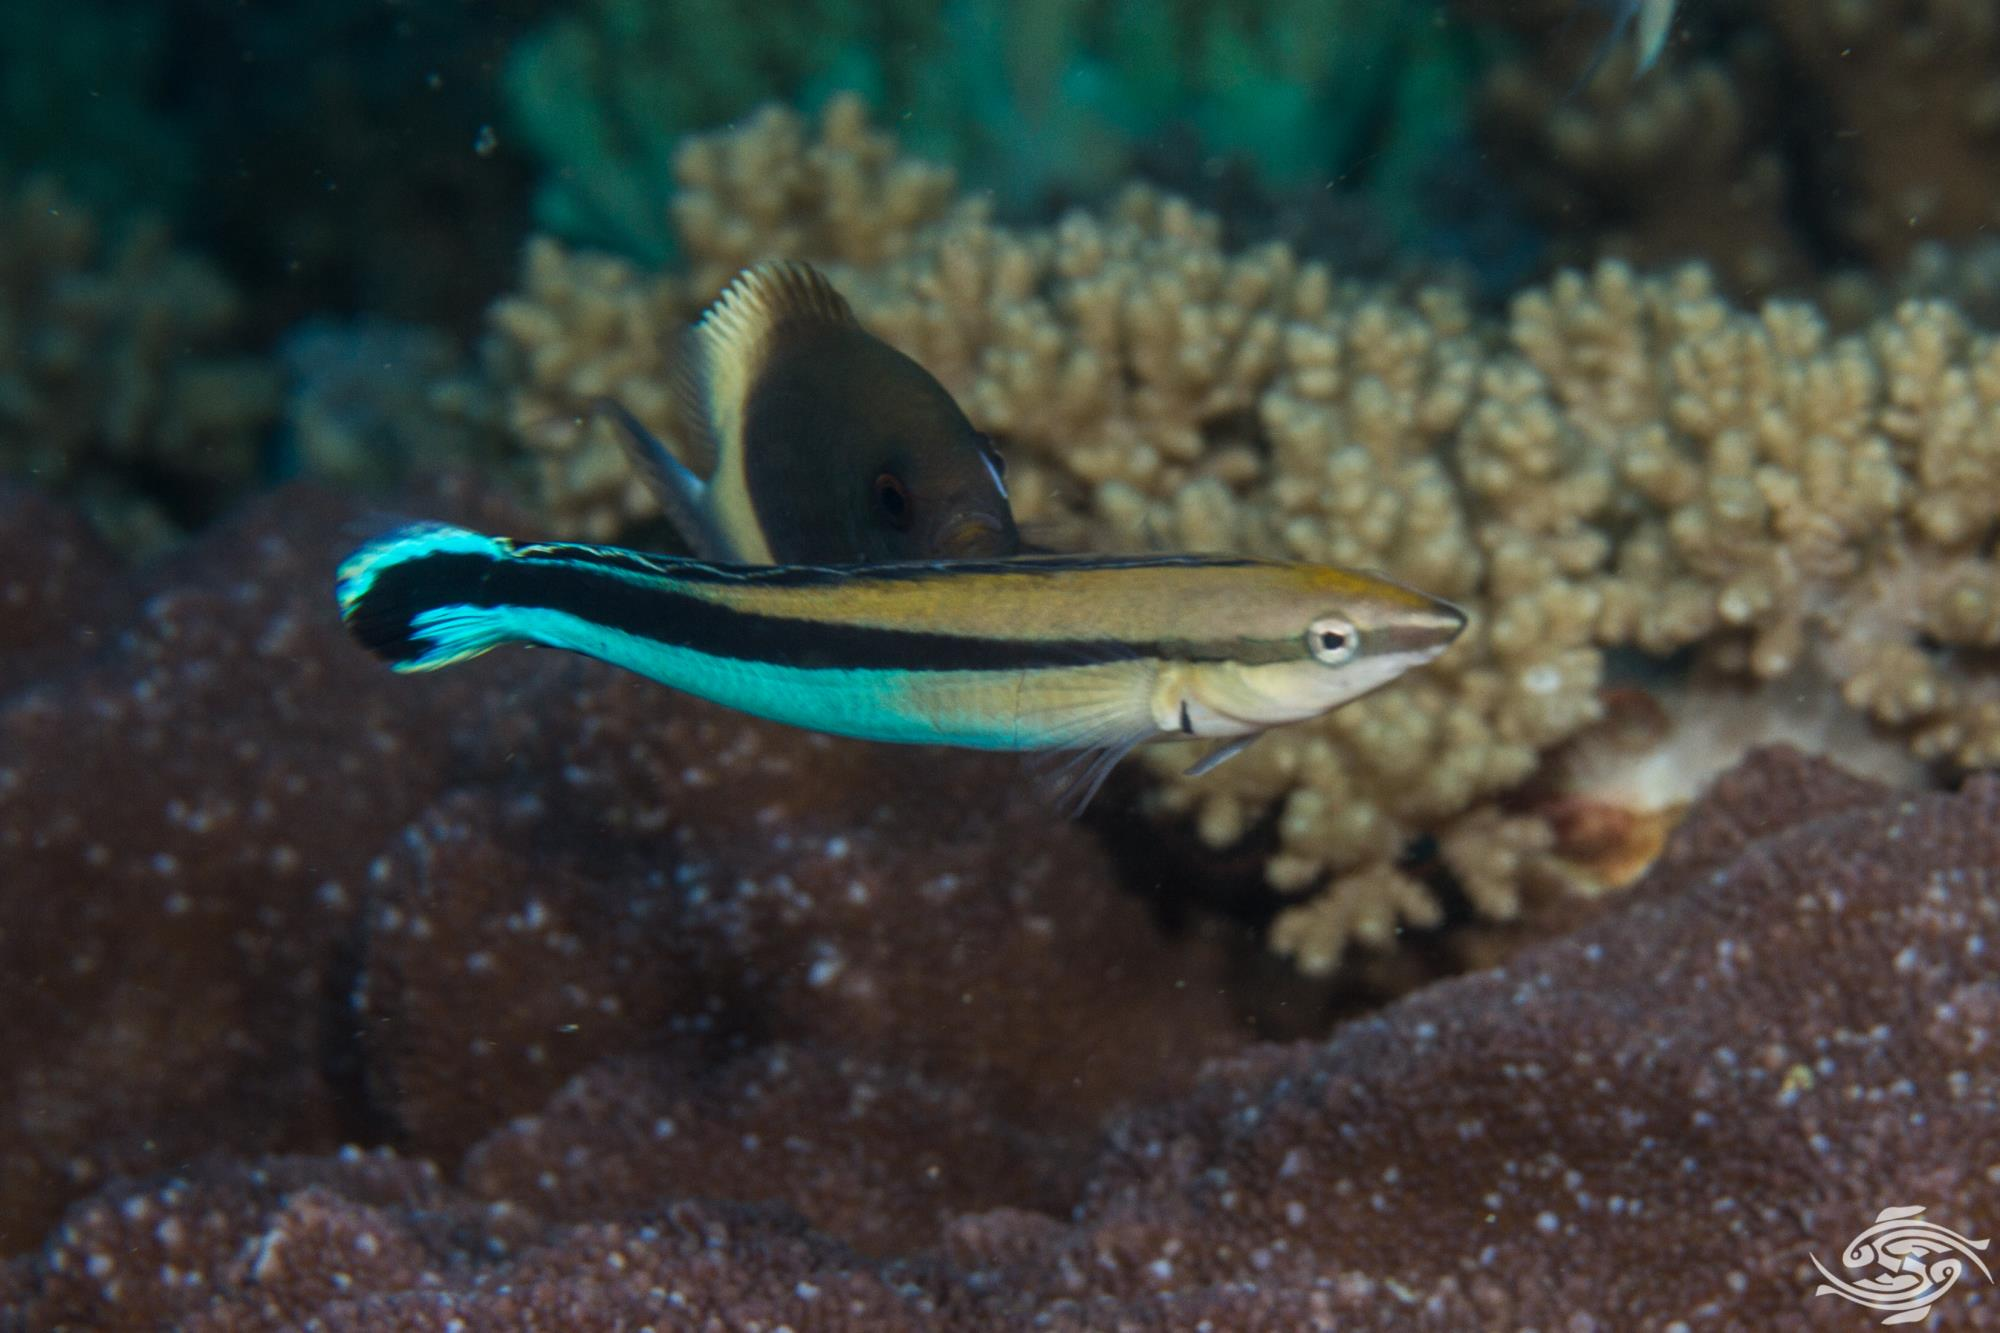 False Cleanerfish (Aspidontus tractus)